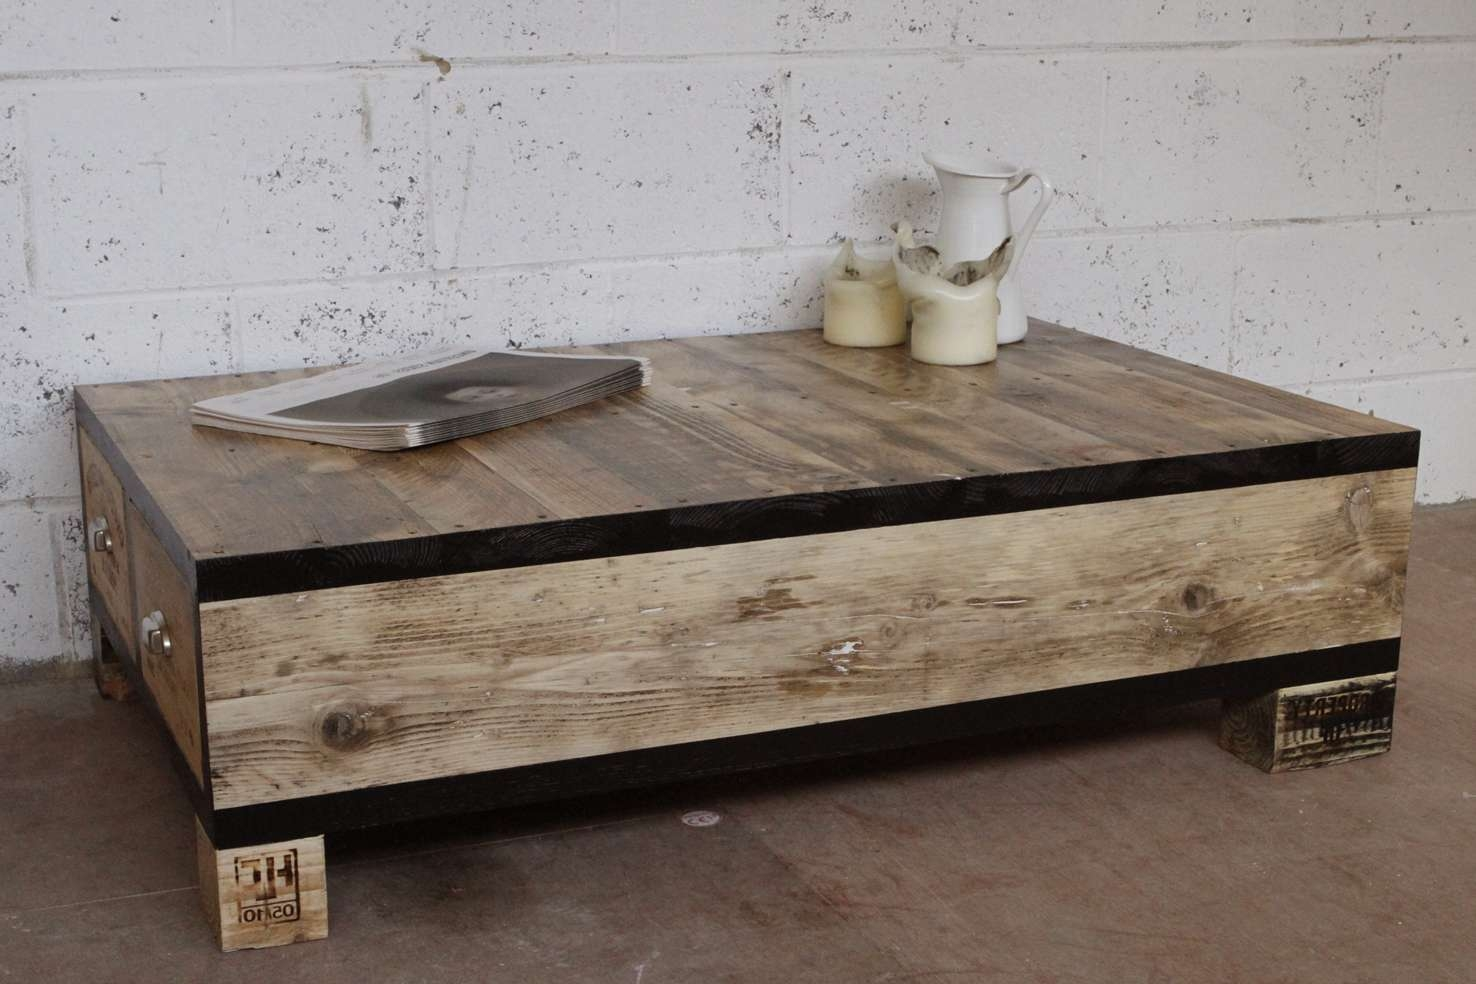 Best And Newest Low Wood Coffee Tables Throughout Old And Vintage Diy Square Low Wood Coffe Table With Drawers Using (View 9 of 20)